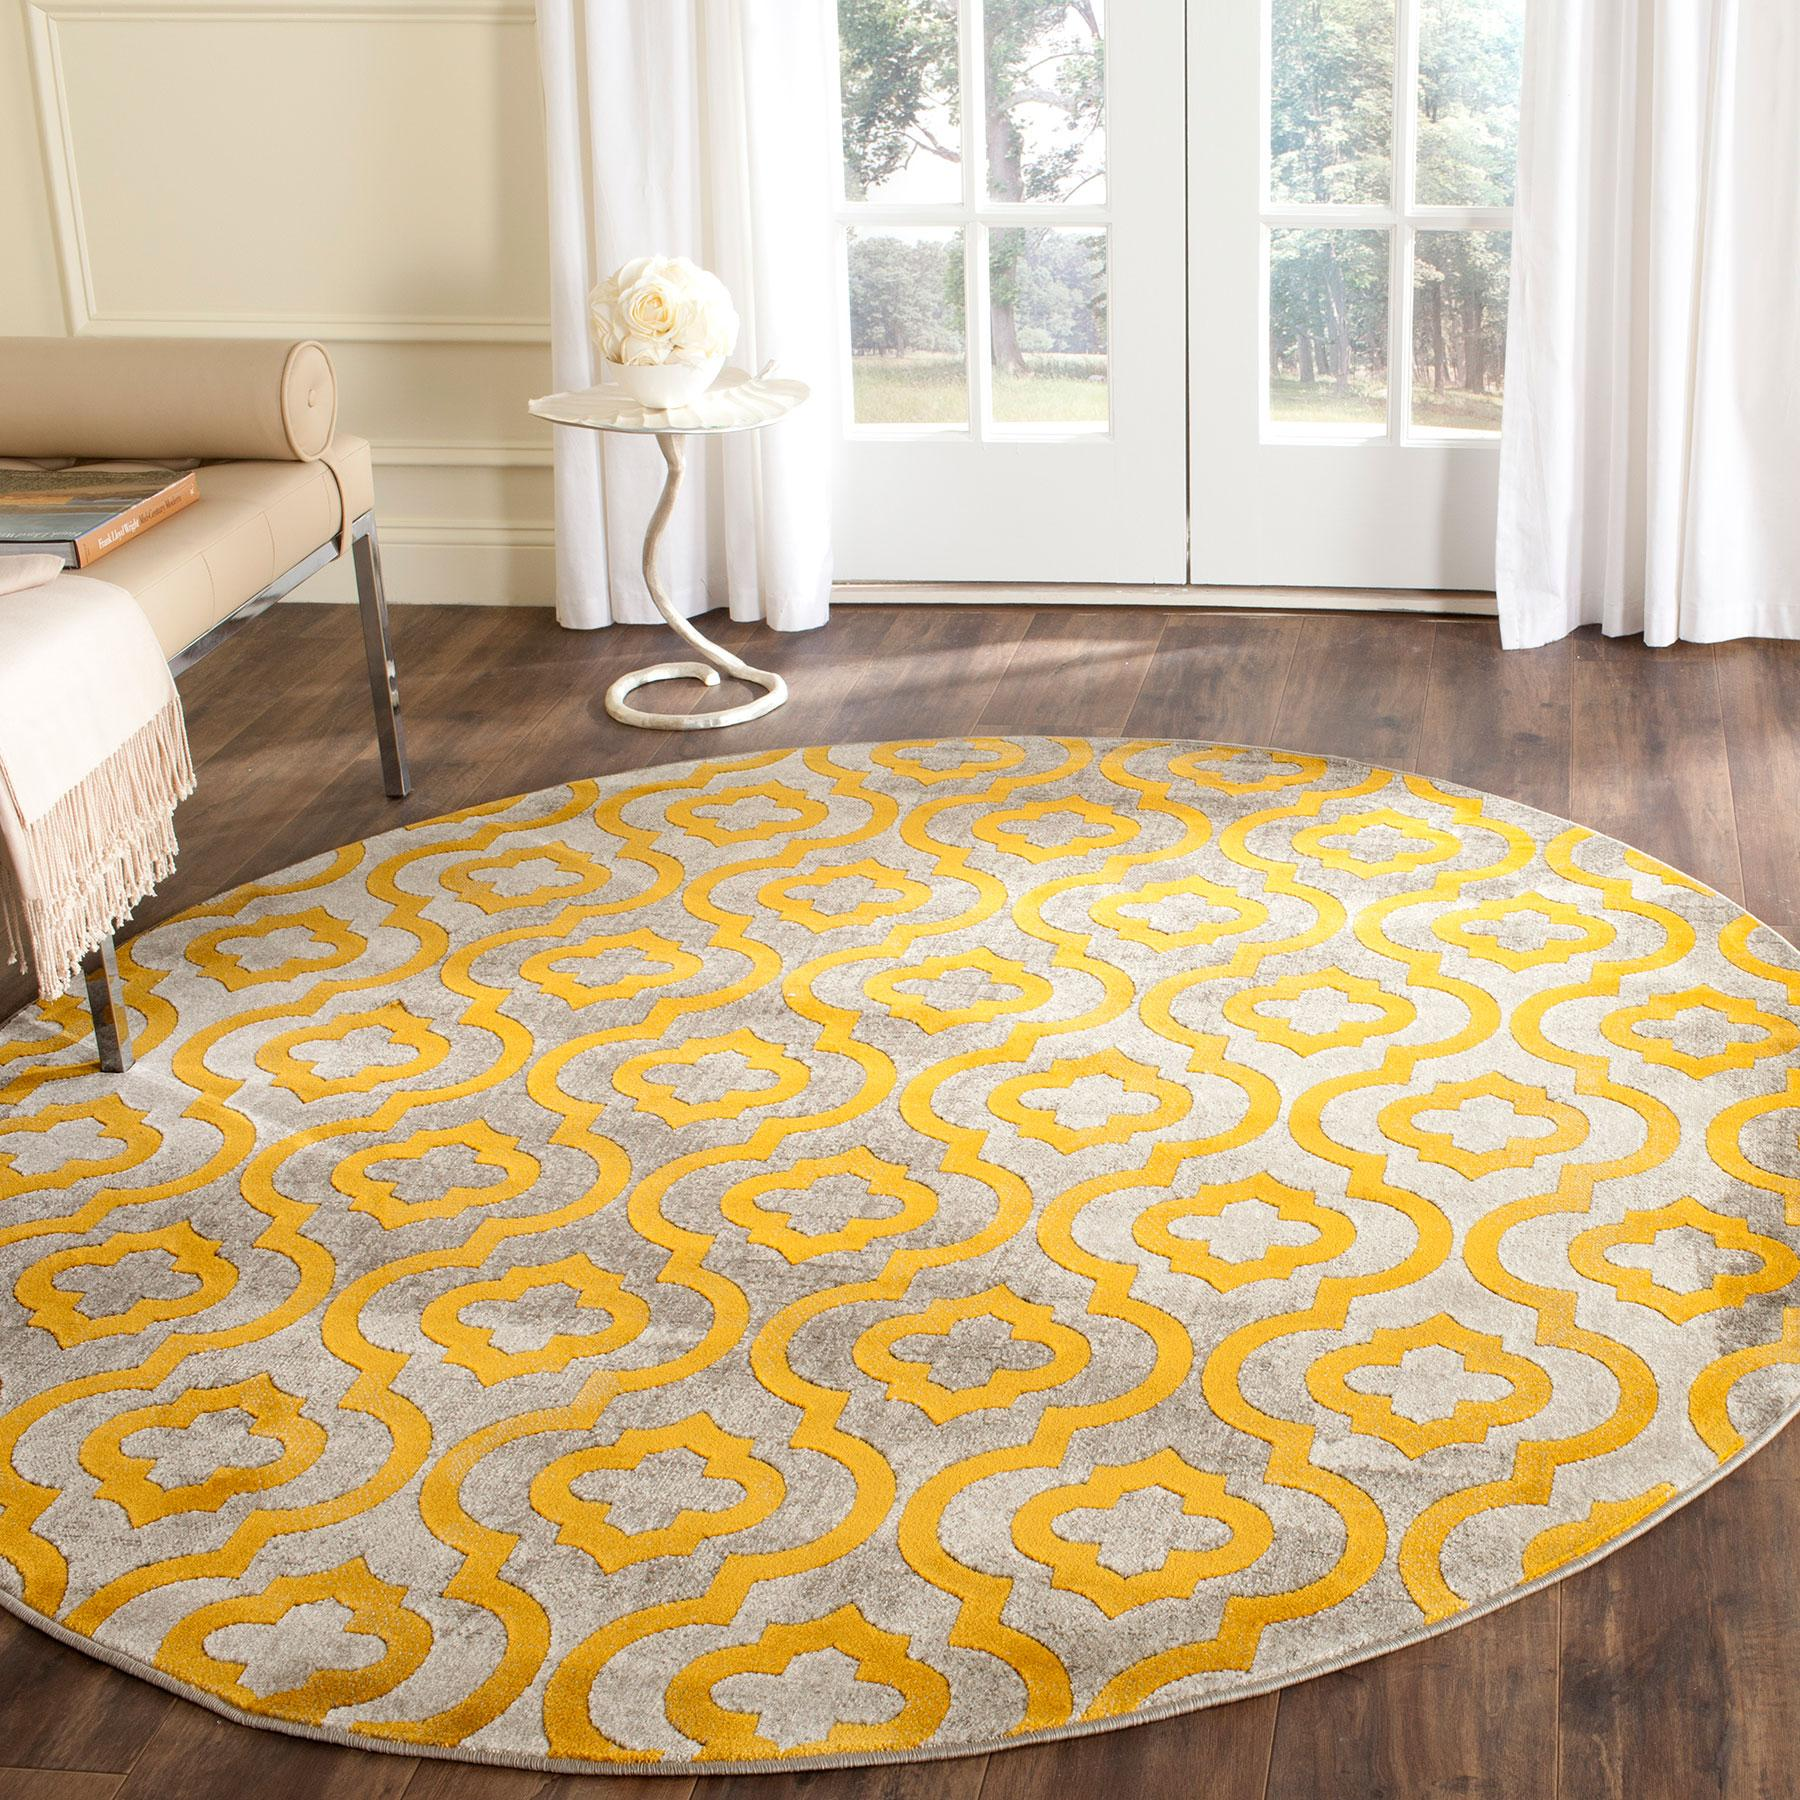 Rug Prl7734c Porcello Area Rugs By Safavieh